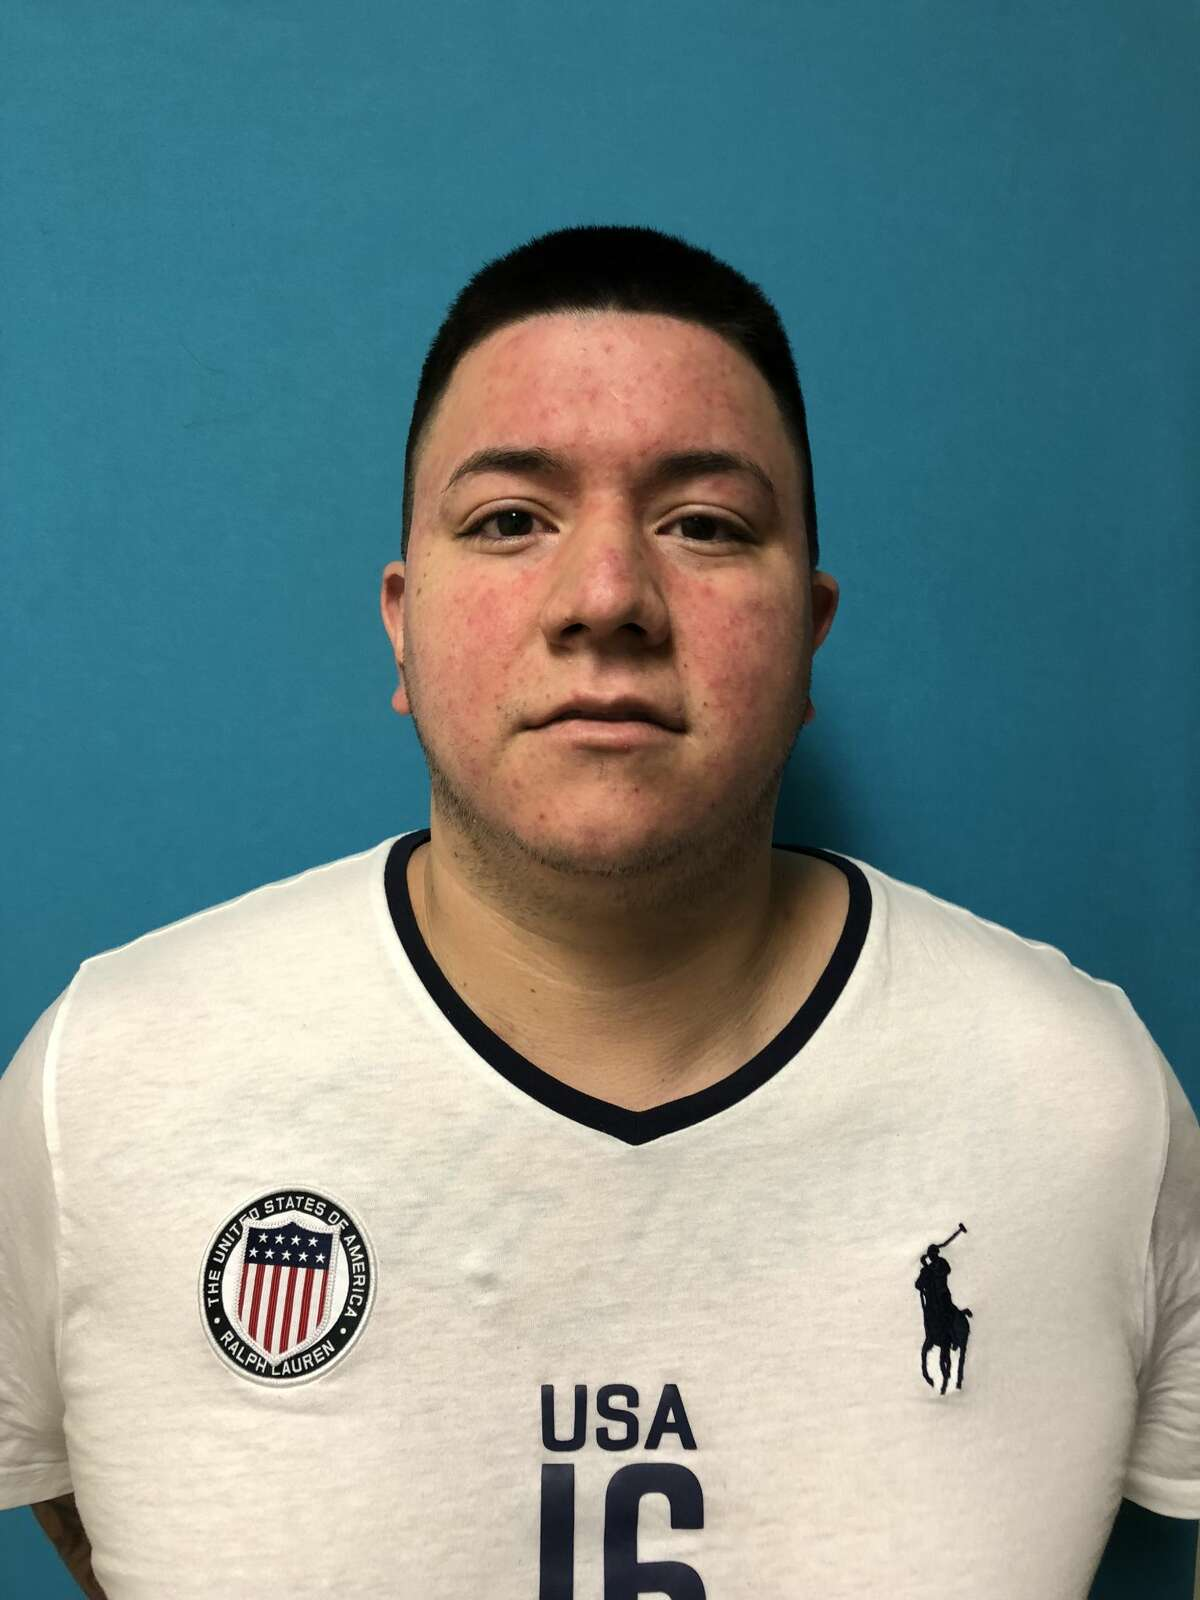 John Escobedo, 25, was arrested April 27, 2018 and charged with aggravated assault after allegedly being one of the shooters in an April 10 brawl on the Southwest Side.